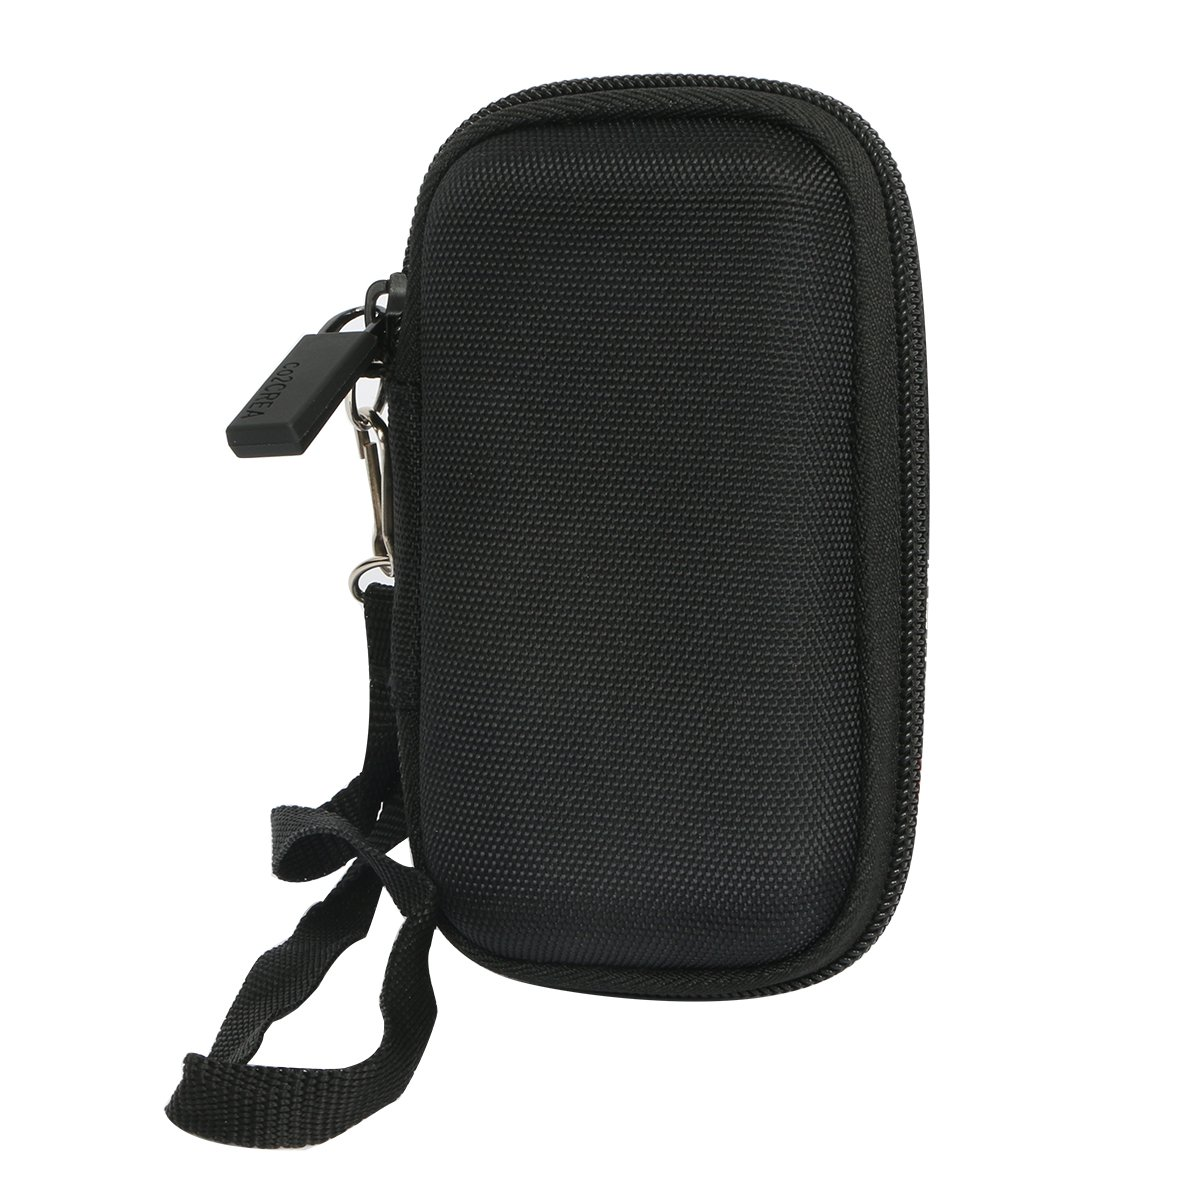 Hard Travel Case for WD My Passport SSD Portable Storage 1TB 2TB 3TB 4TB by co2CREA (Size 2) by Co2Crea (Image #5)